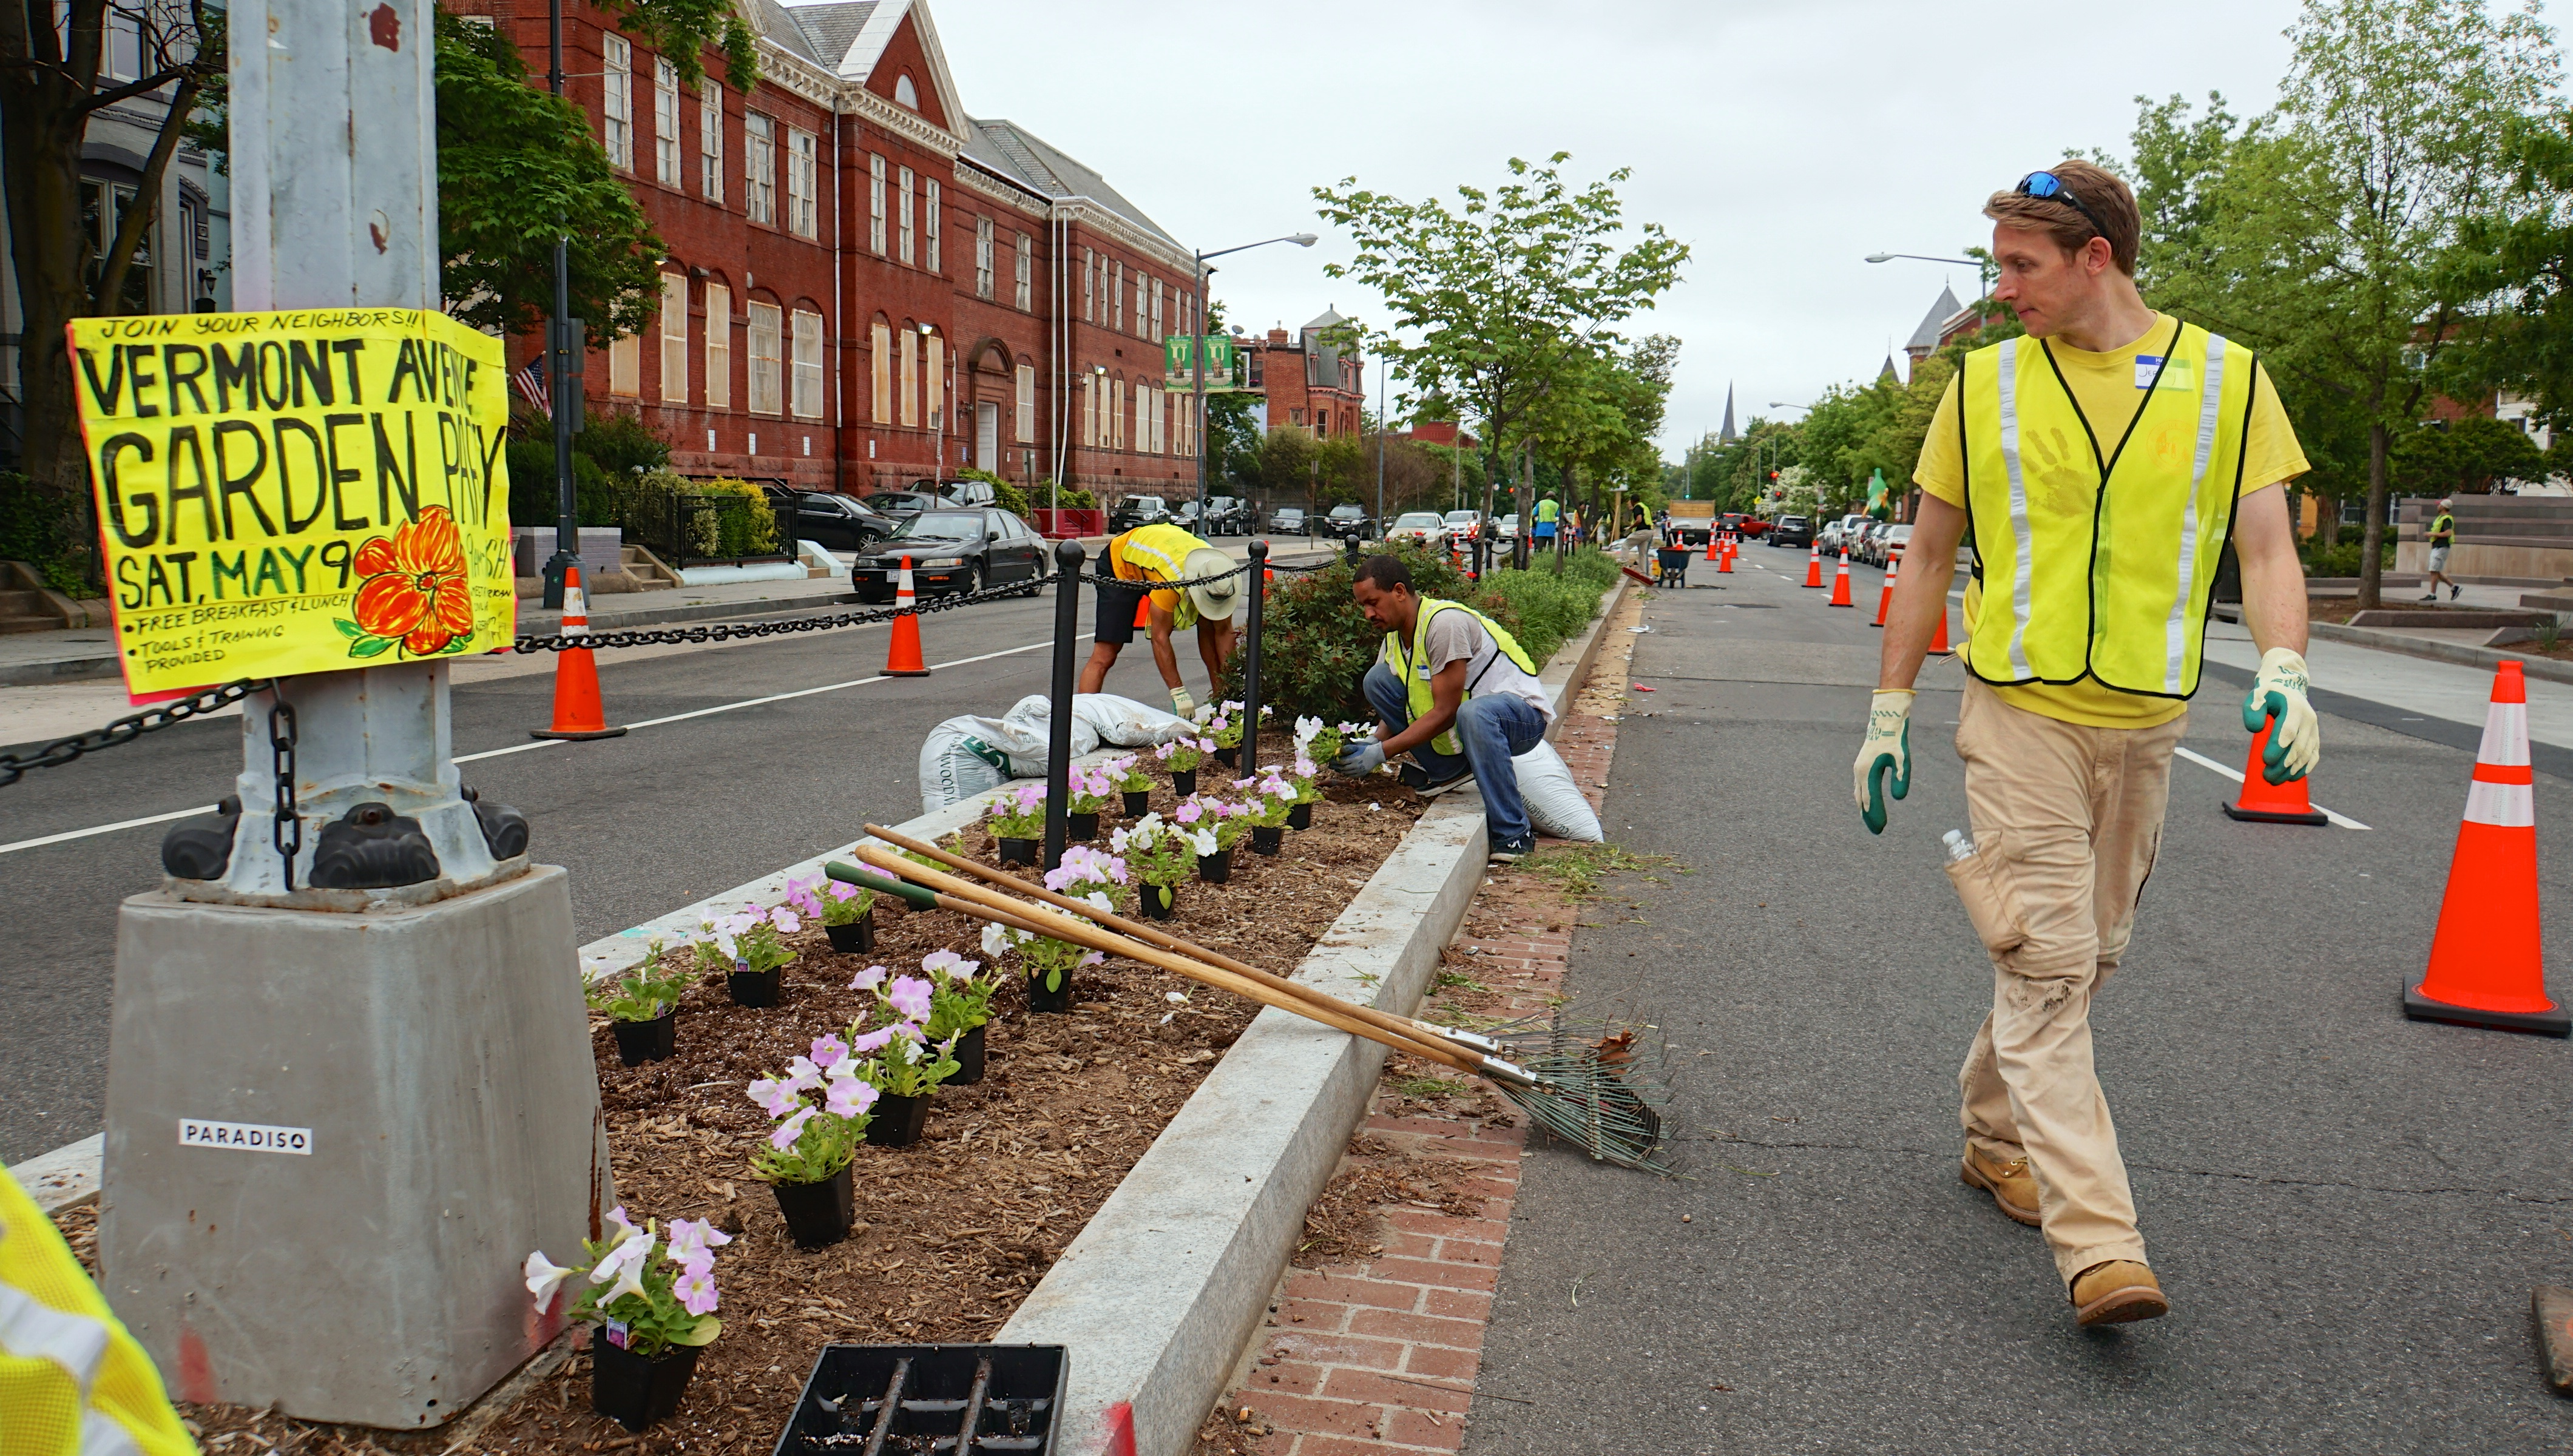 Vermont Ave NW Gardens Planting DC 55189